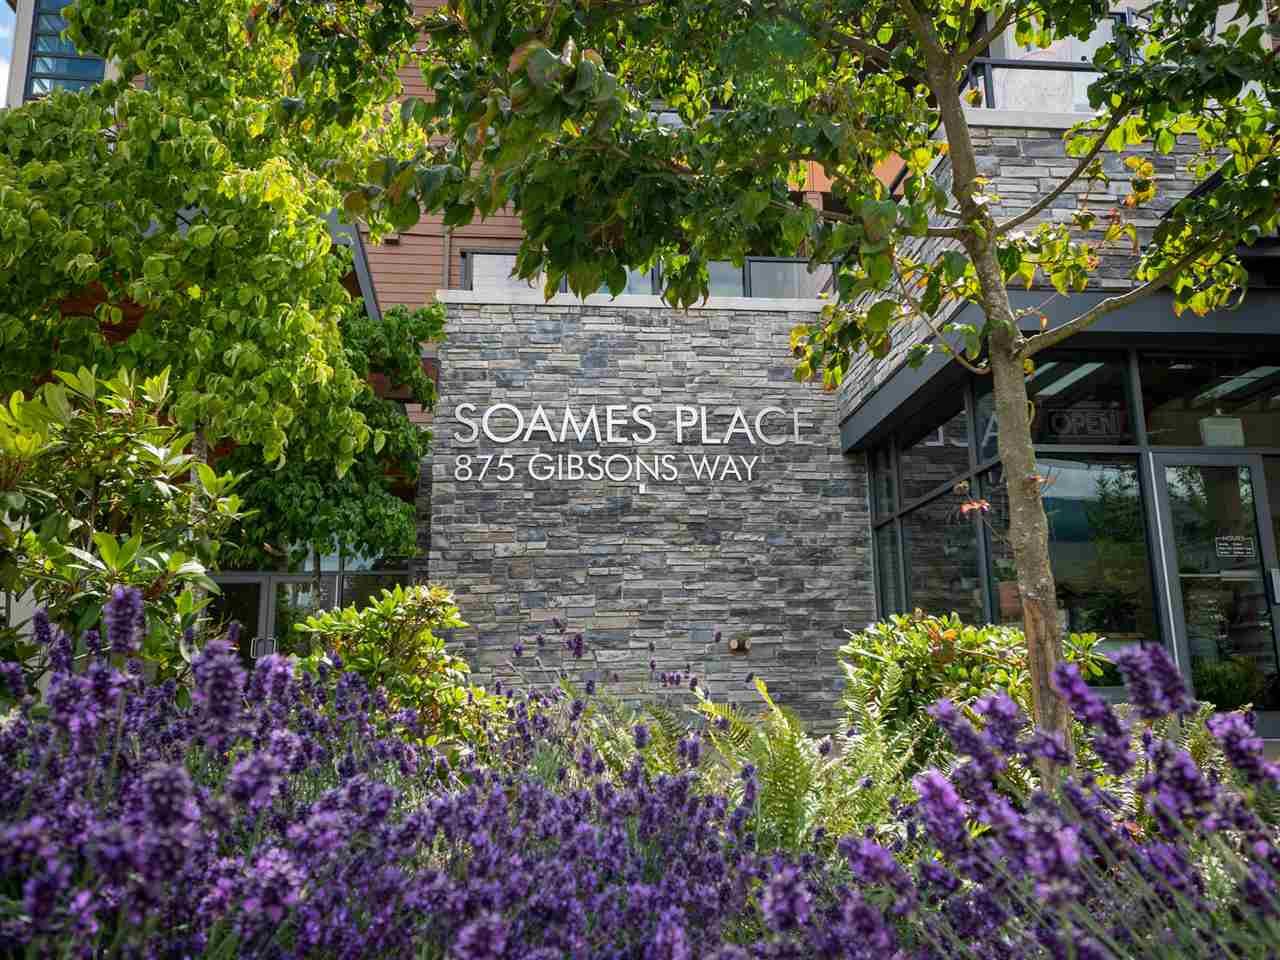 210 210 875 GIBSONS WAY - Gibsons & Area Apartment/Condo for sale, 2 Bedrooms (R2542139) - #4